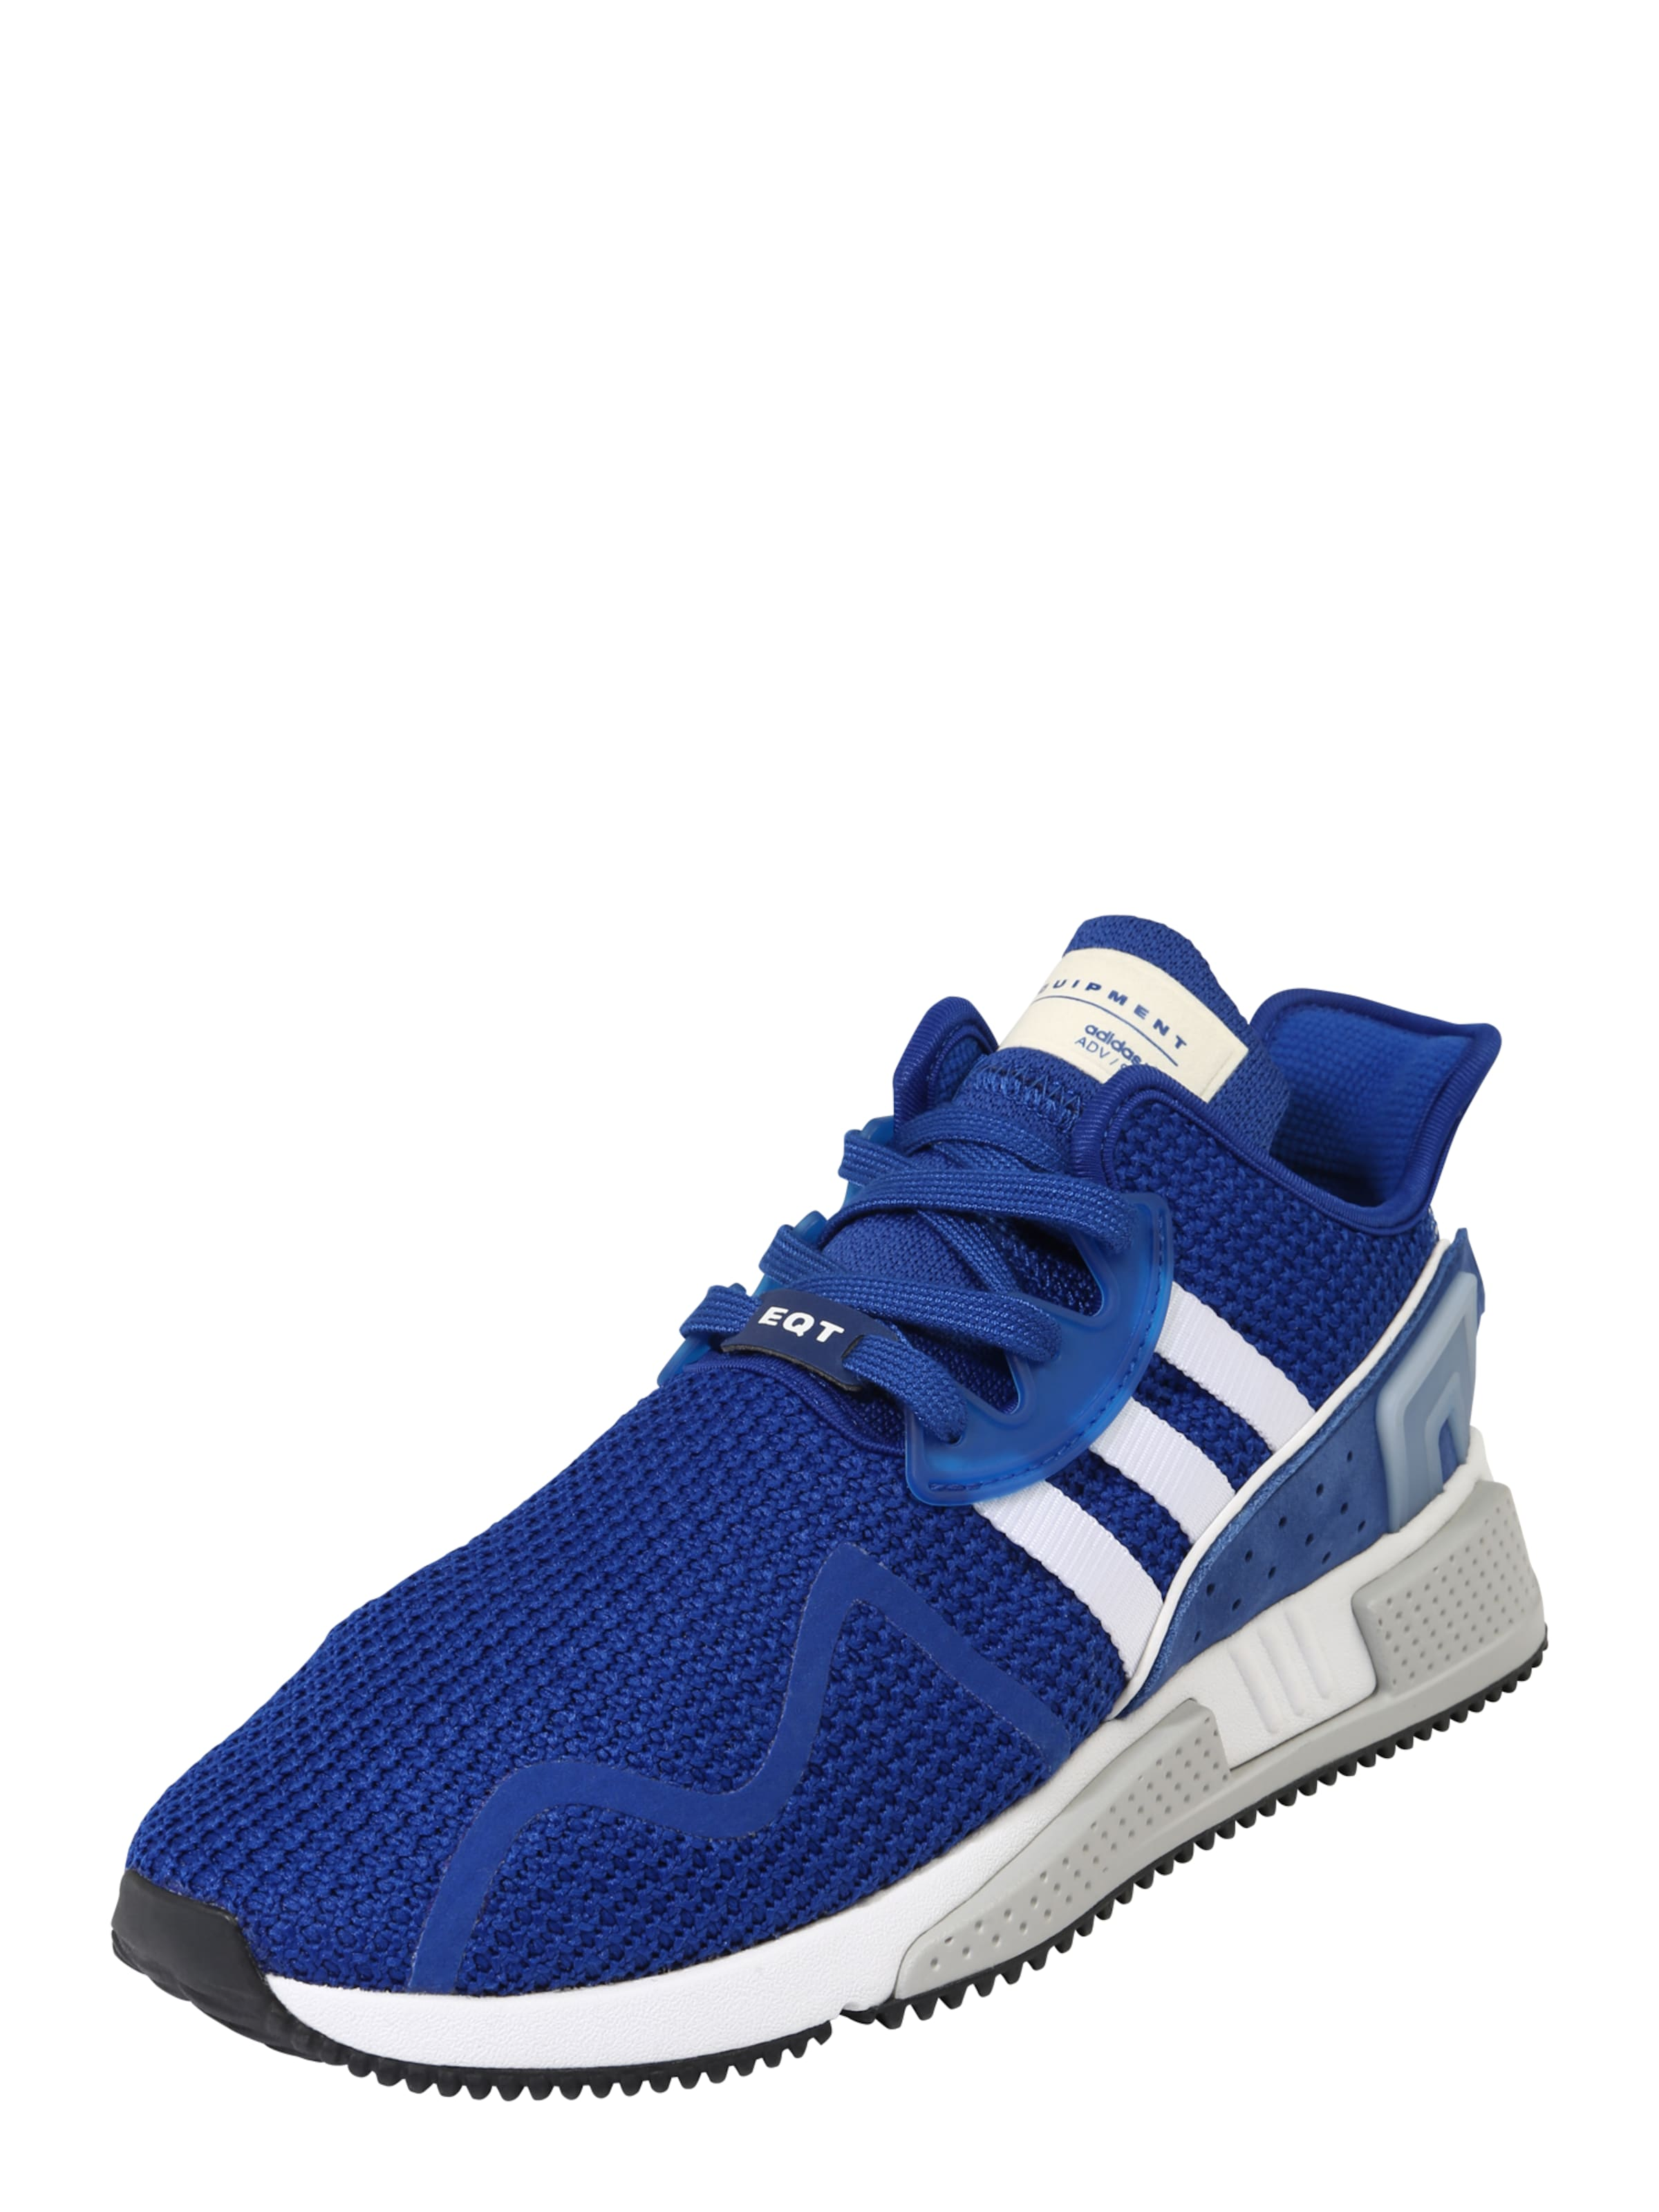 ADIDAS ORIGINALS | Turnschuhe CUSHION